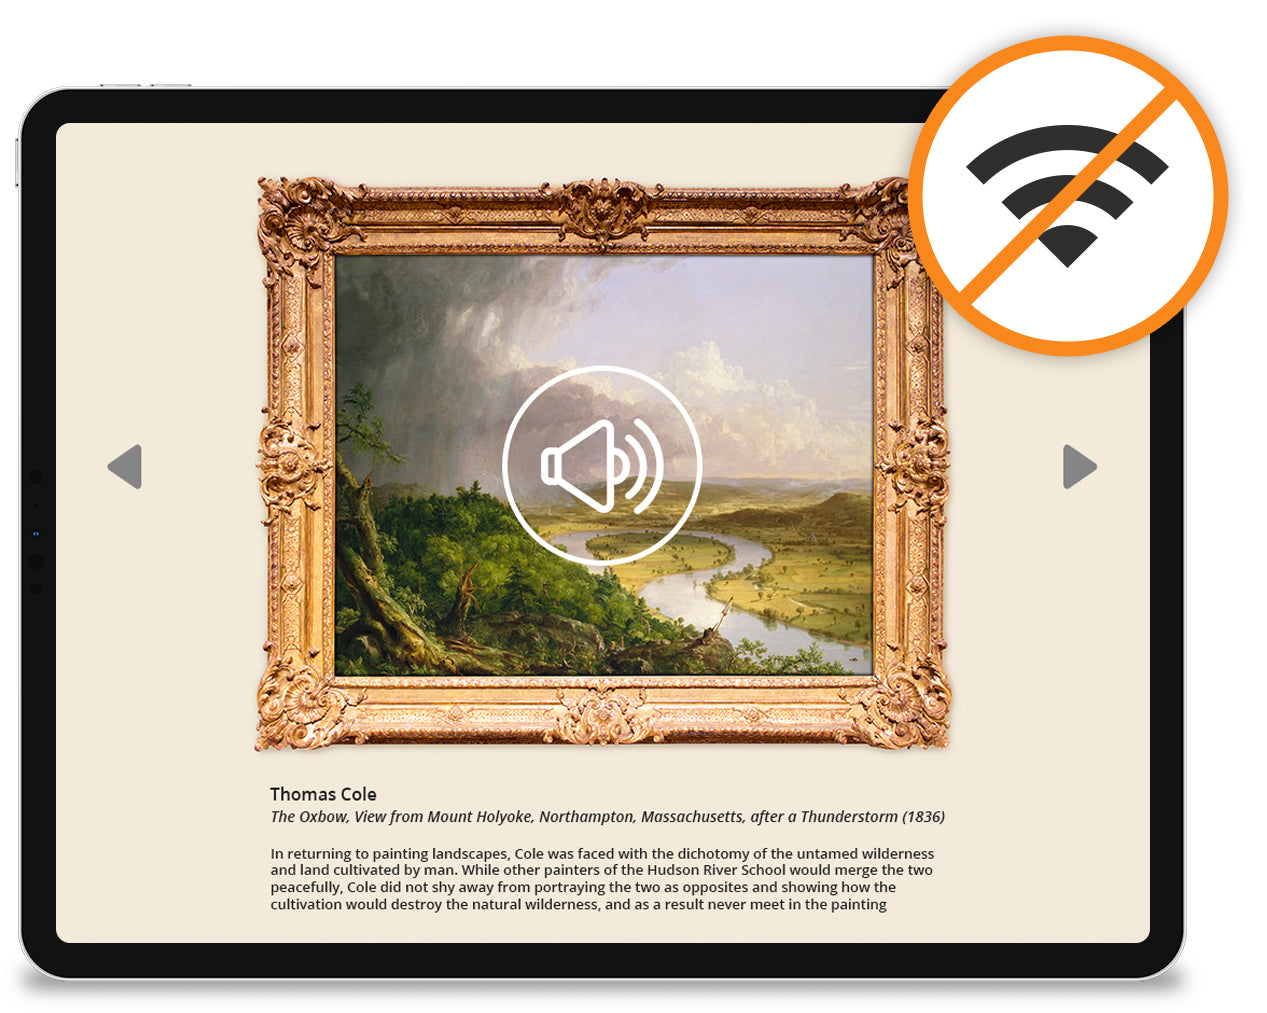 An iPad displaying content for a museum without an internet connection.